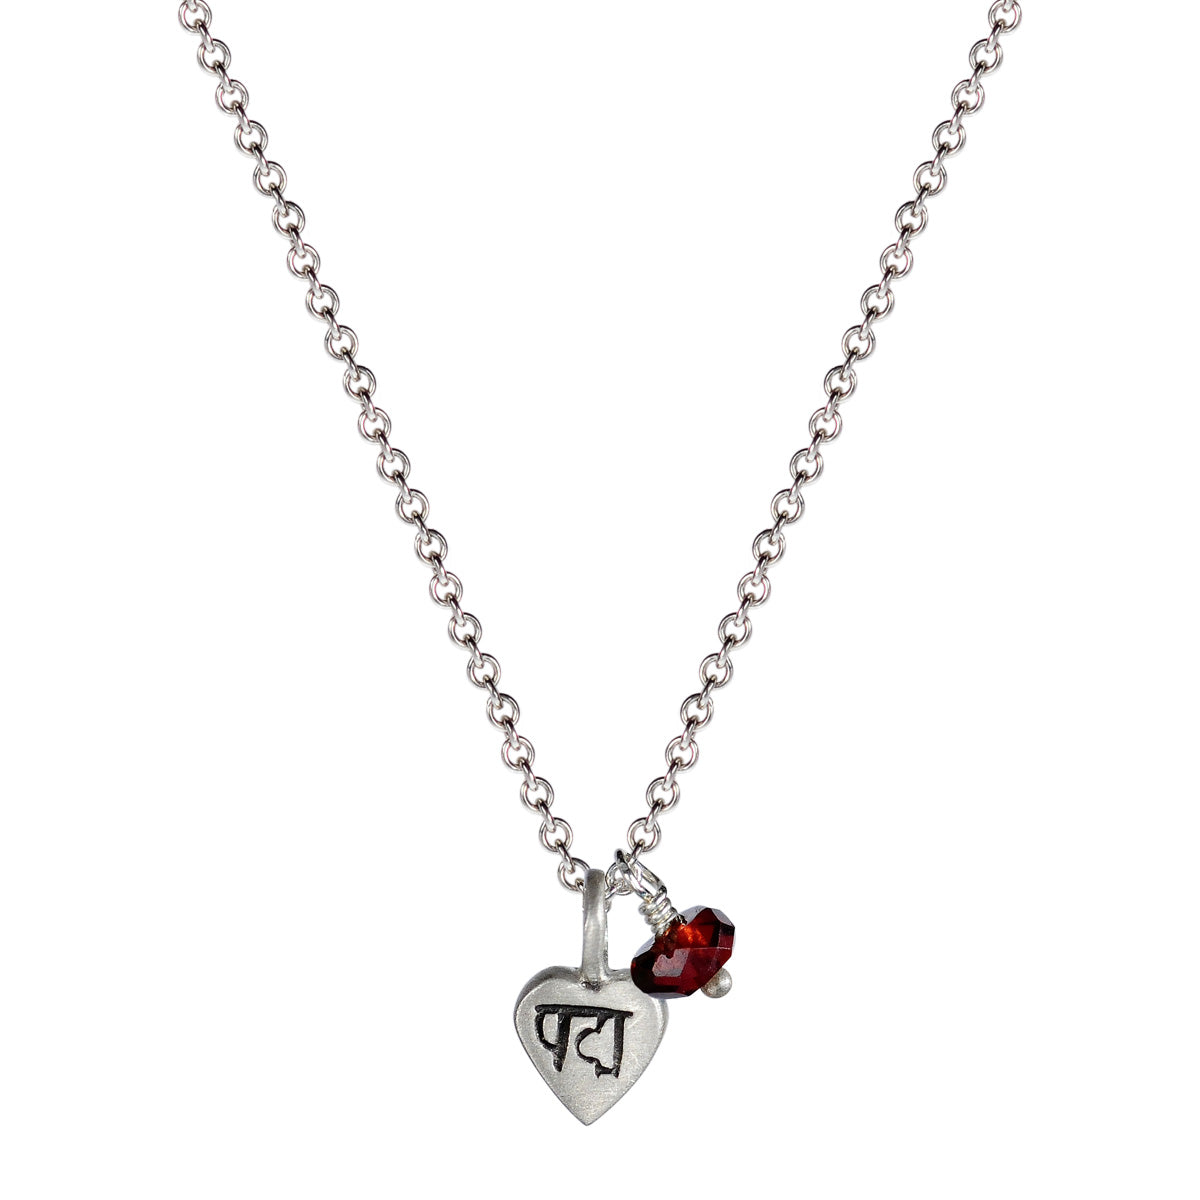 Sterling Silver Tiny Lotus Heart Pendant with Garnet Bead